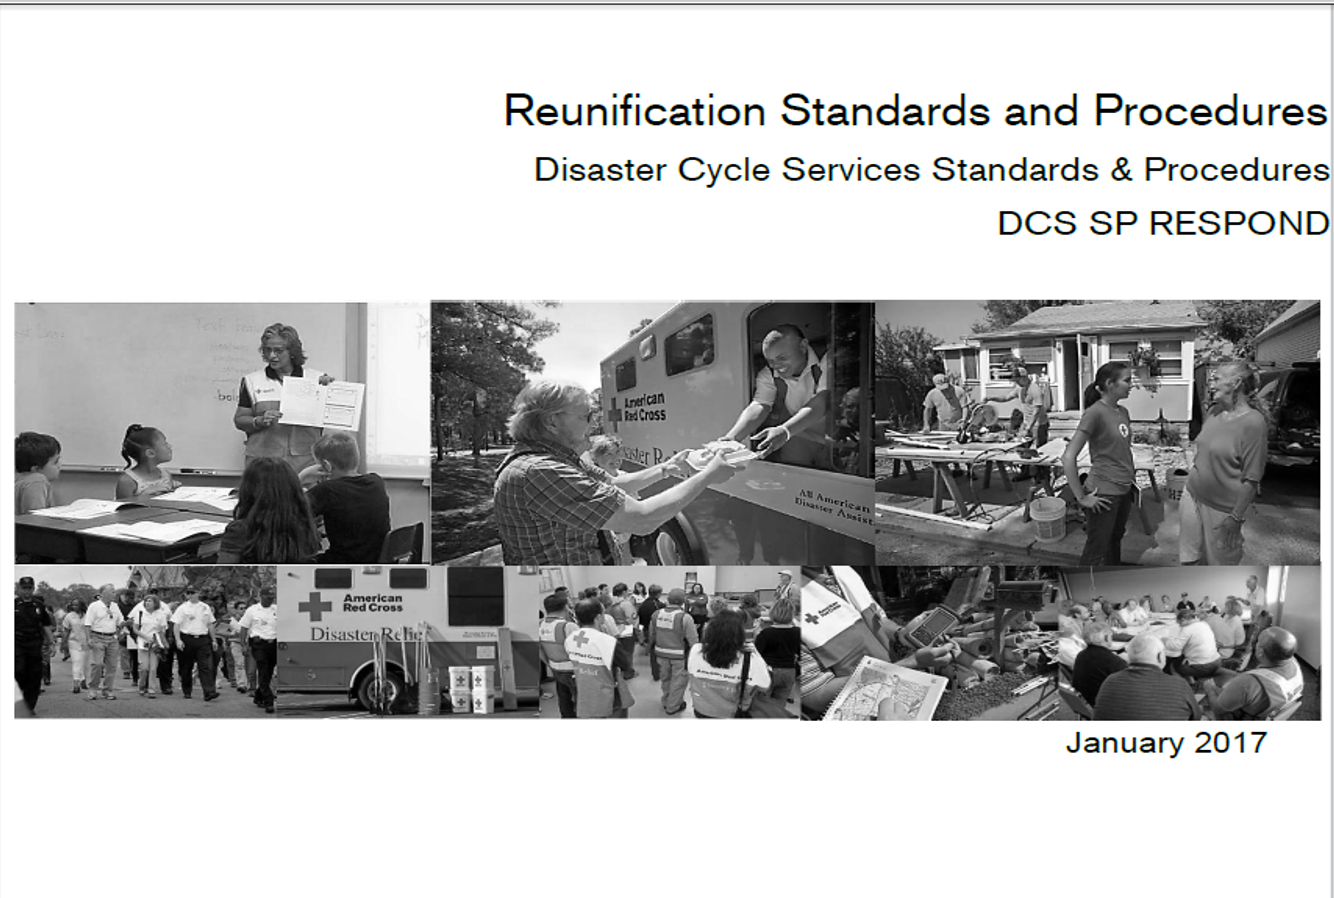 American Red Cross releases new Reunification doctrine